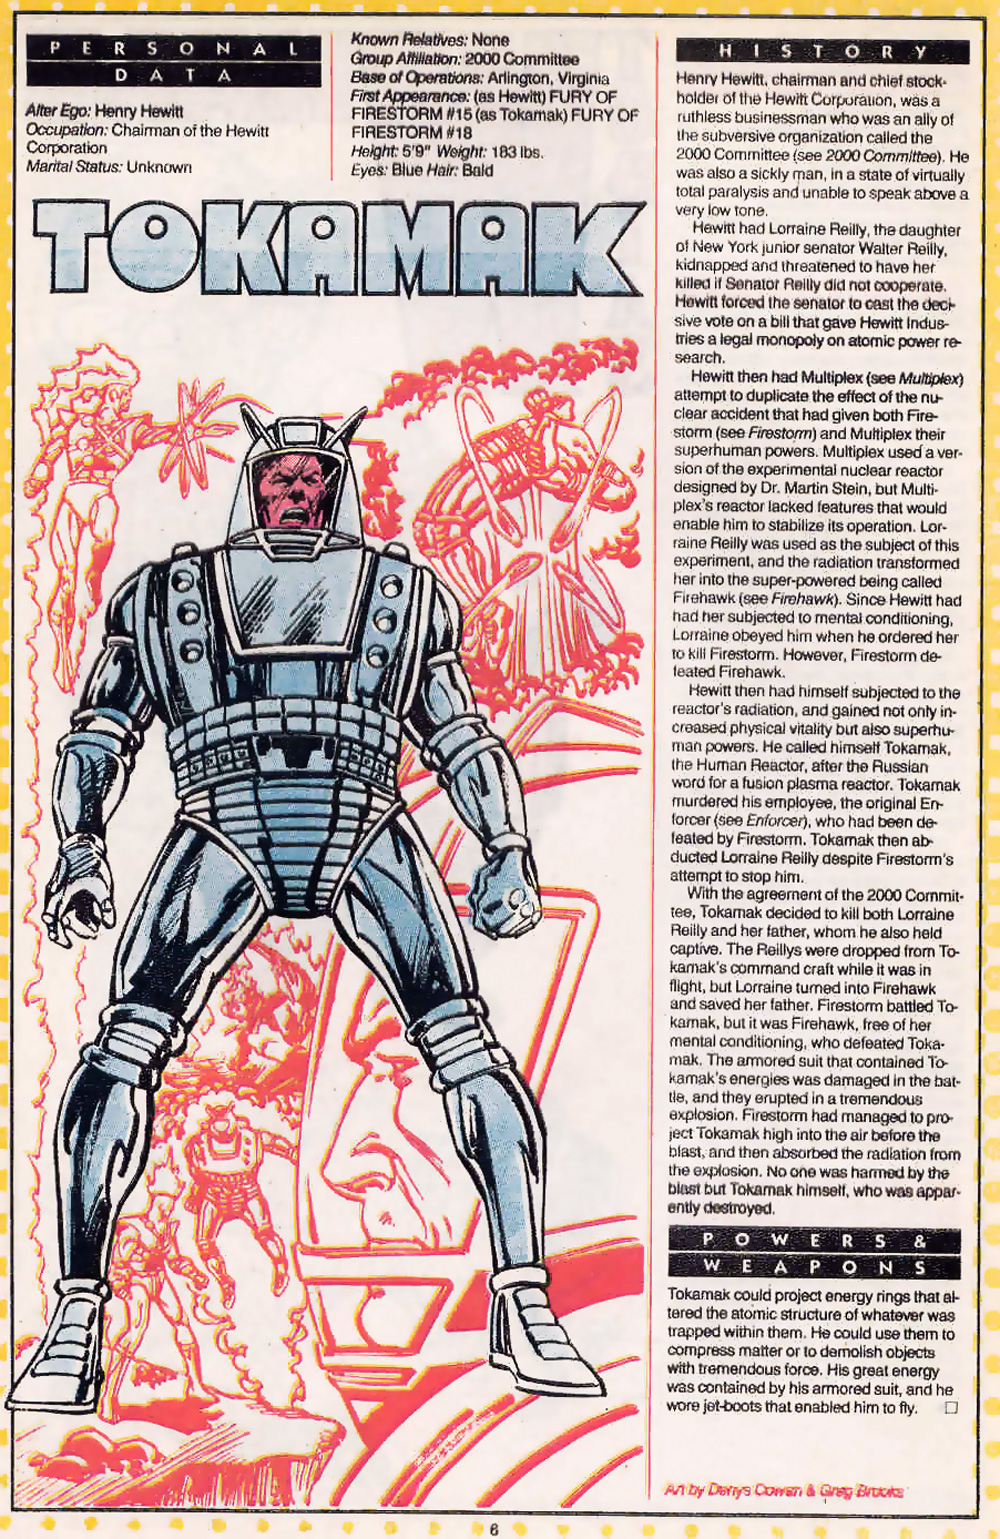 Tokamak from Who's Who and The Flash